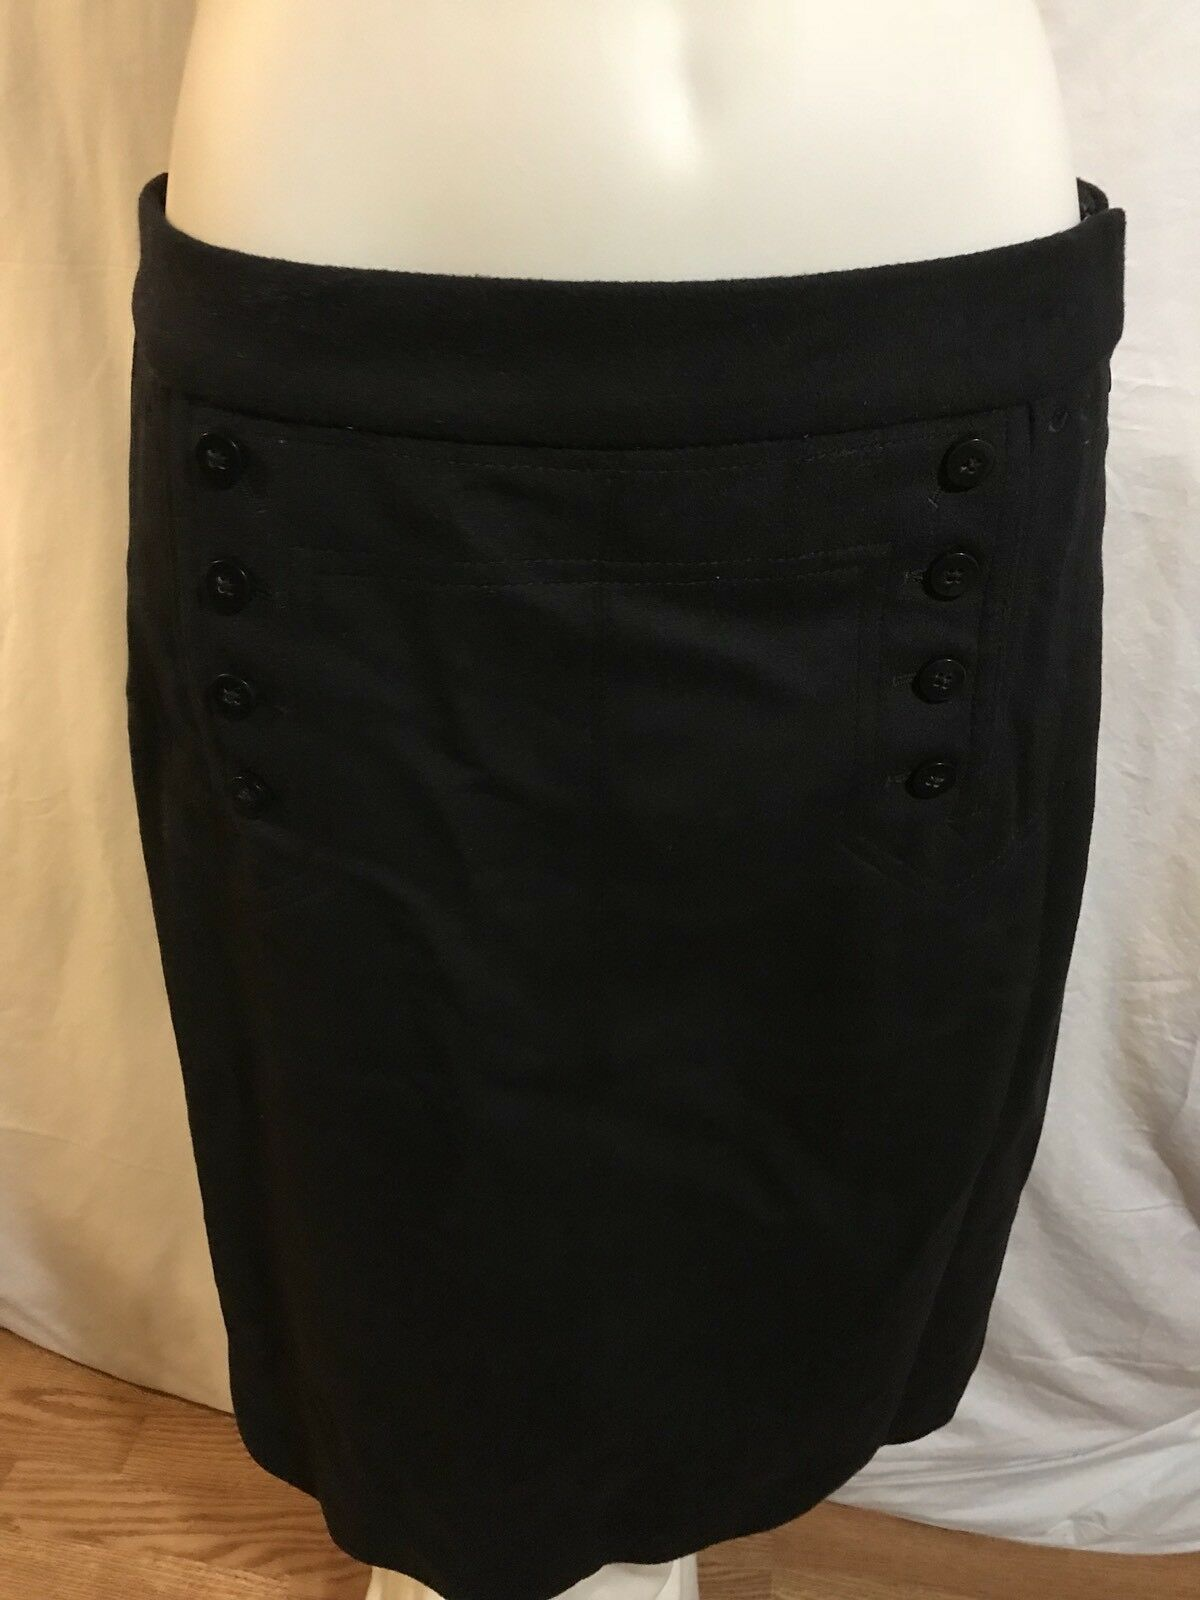 Marc by marc jacobs Skirt size 6 made in Turkey